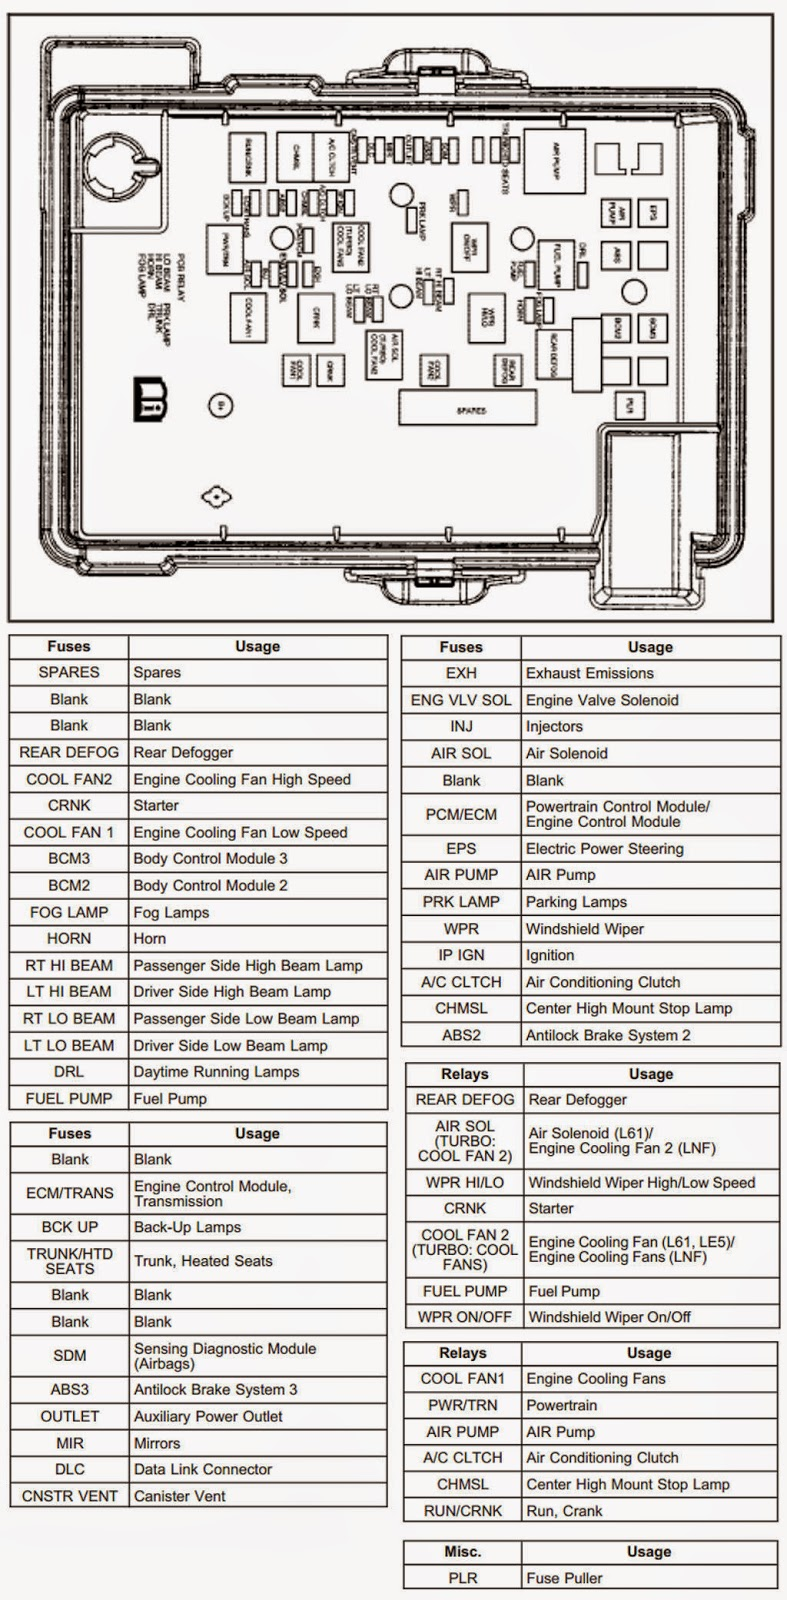 Fuse Box In Chevy Cobalt Wiring Library 2007 Ford Focus Diagram 2005 Schematics 08